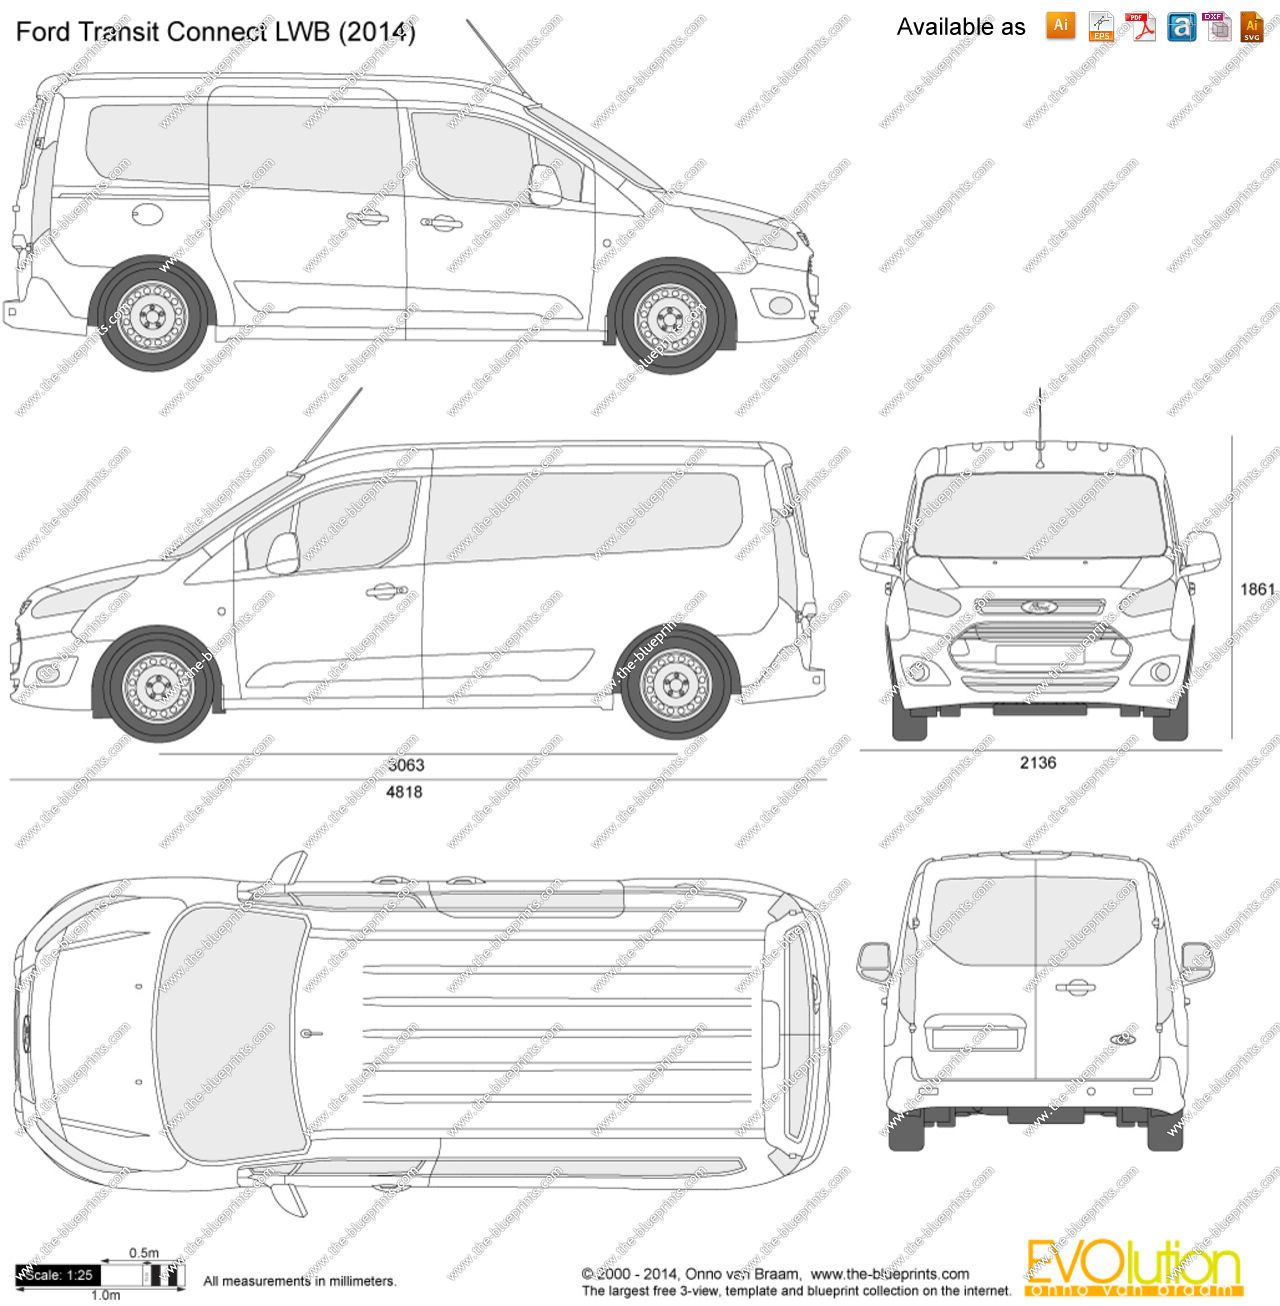 ford transit connect lwb 2014 dimenzije connect pinterest search ford transit and ford. Black Bedroom Furniture Sets. Home Design Ideas